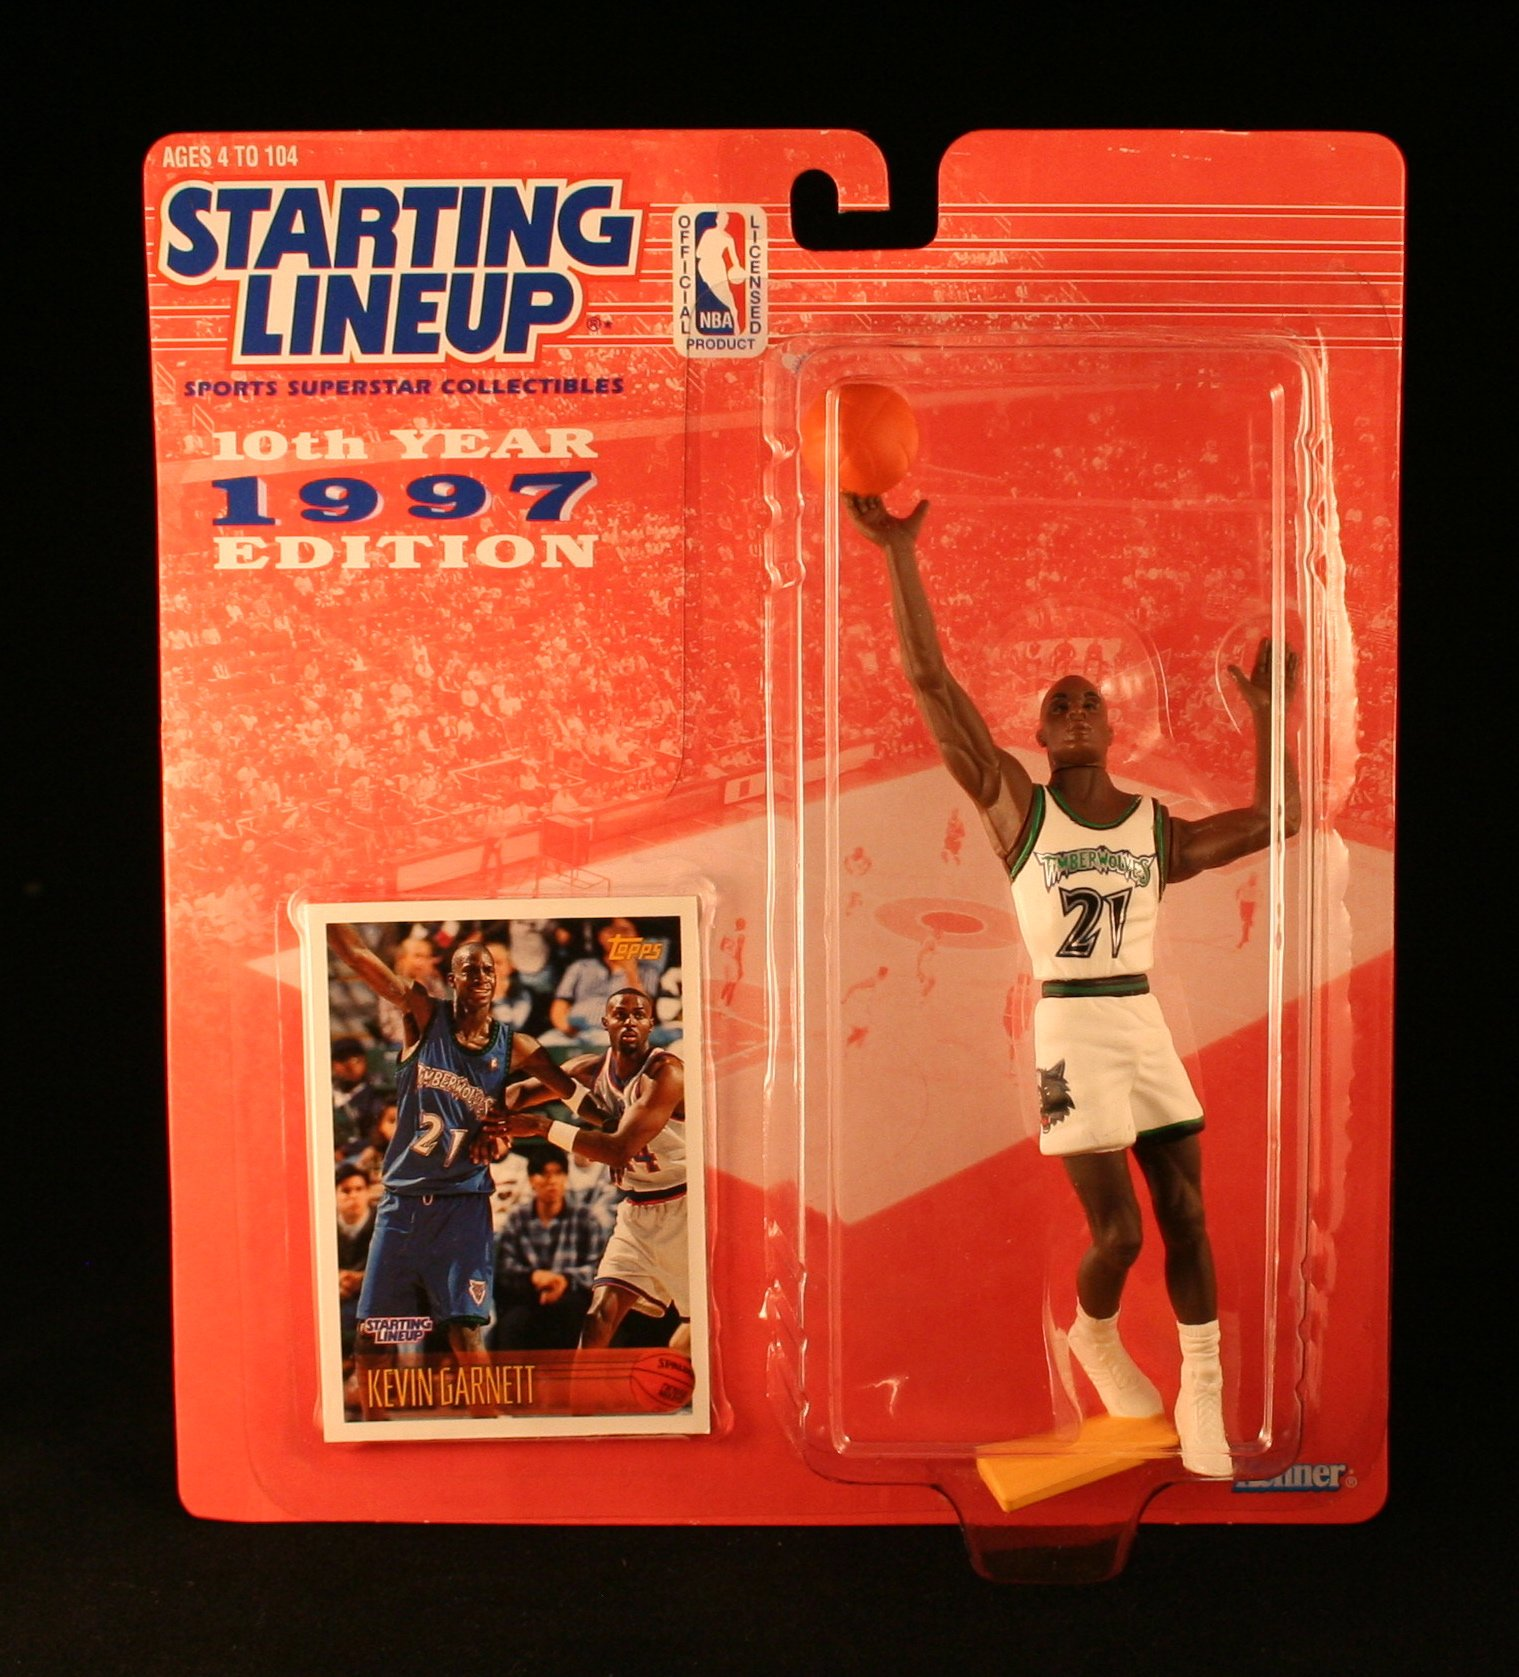 KEVIN GARNETT / MINNESOTA TIMBERWOLVES * 1997 * NBA Kenner Starting Lineup & Exclusive TOPPS Collector Trading Card